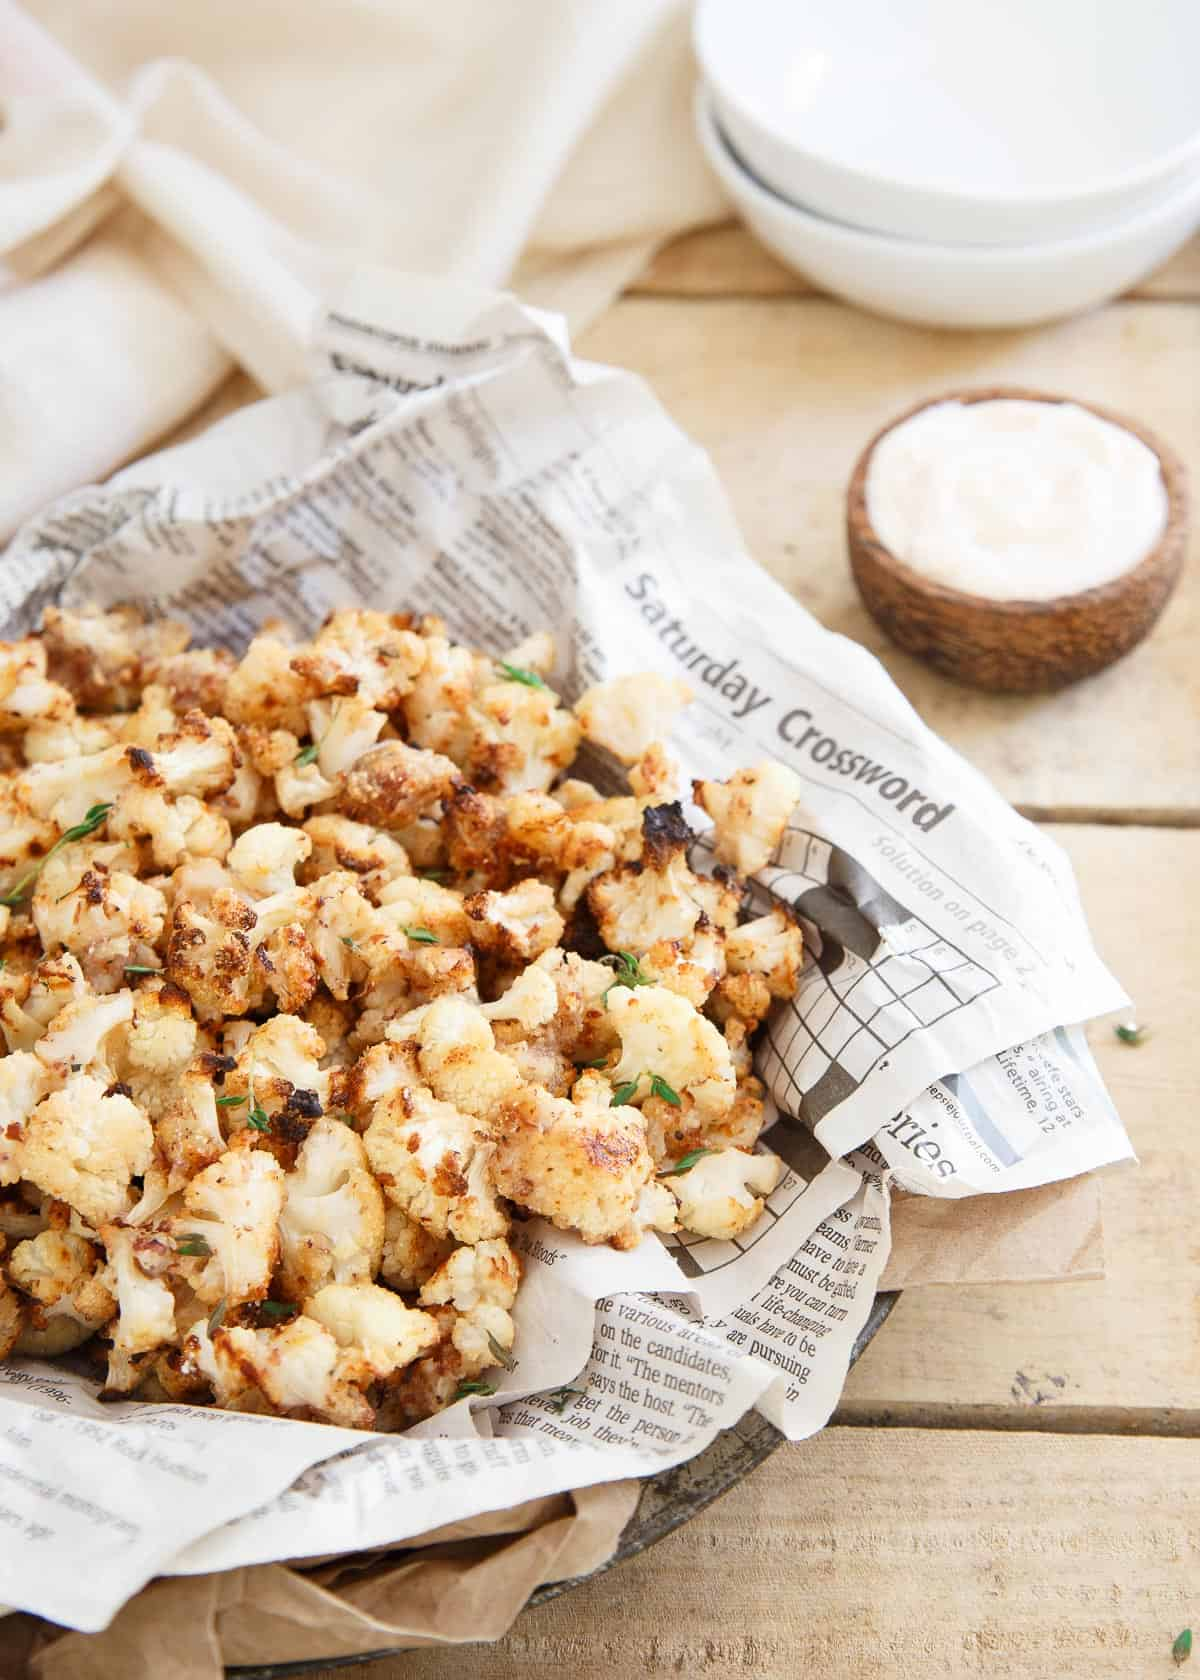 If you love popcorn shrimp, you'll love this salt and vinegar popcorn cauliflower. Just as addictive but a lot healthier.